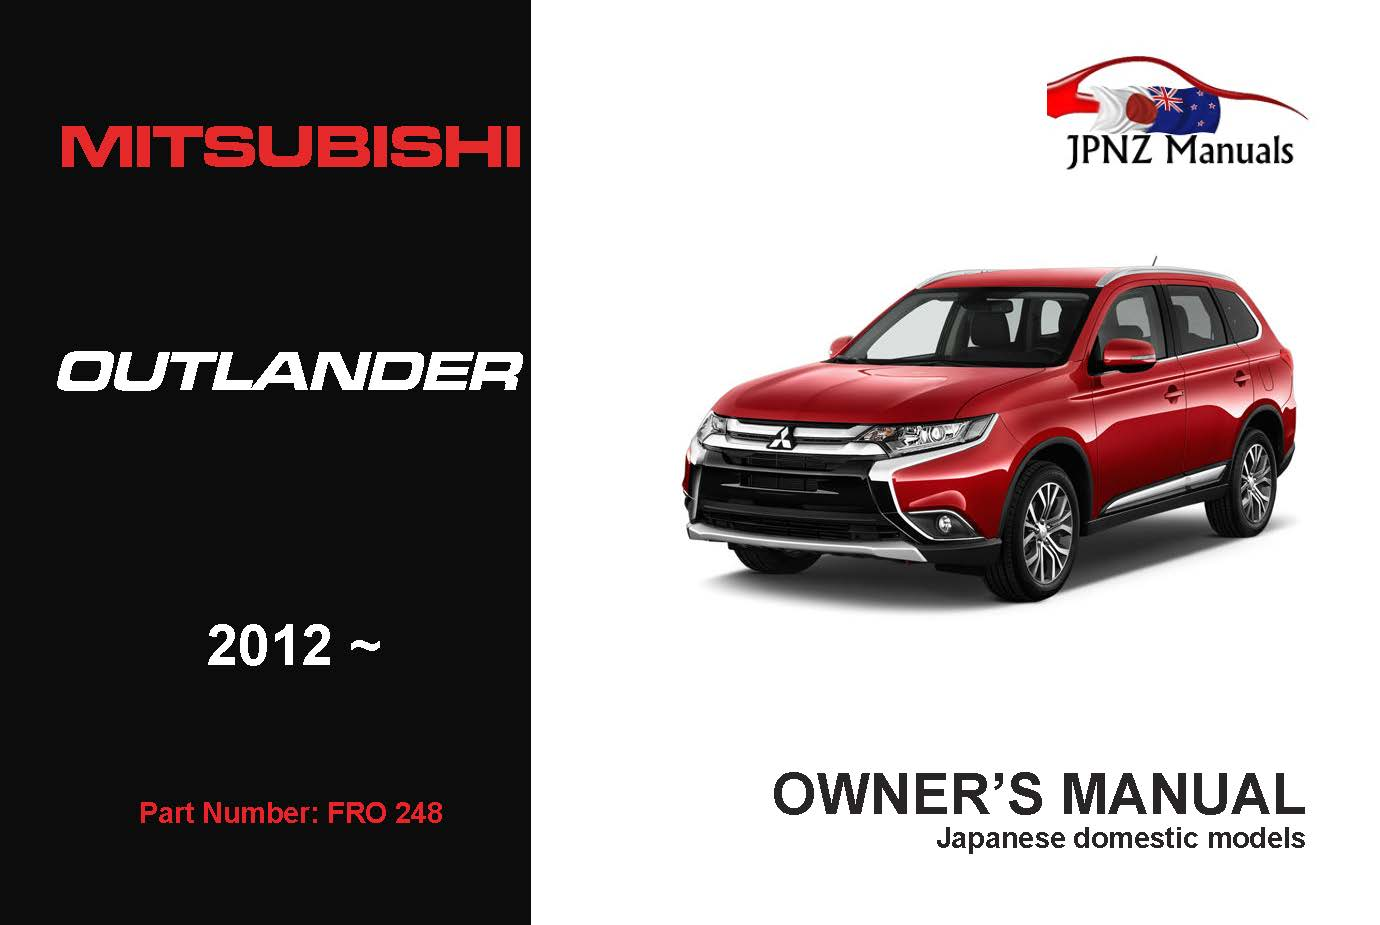 Mitsubishi – Outlander Owners User Manual In English | 2012 – Current